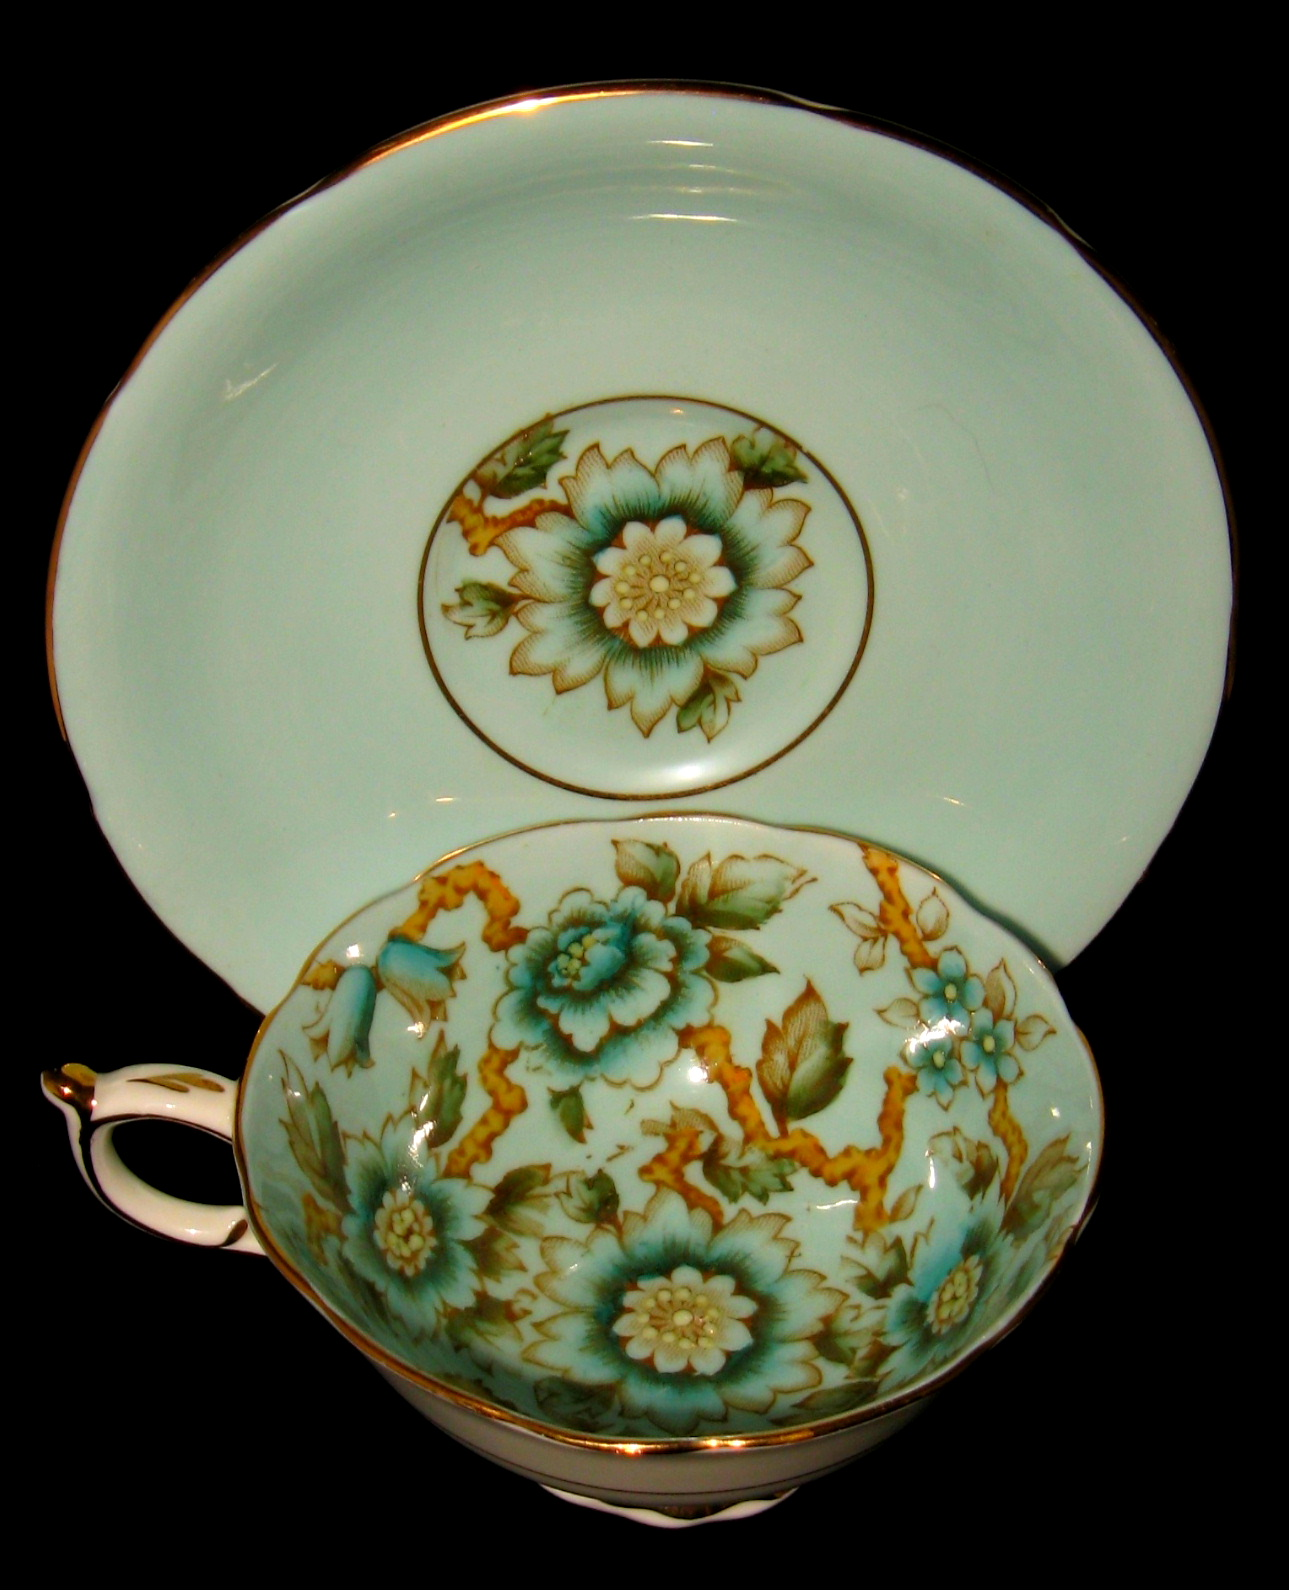 from Jacoby dating paragon china